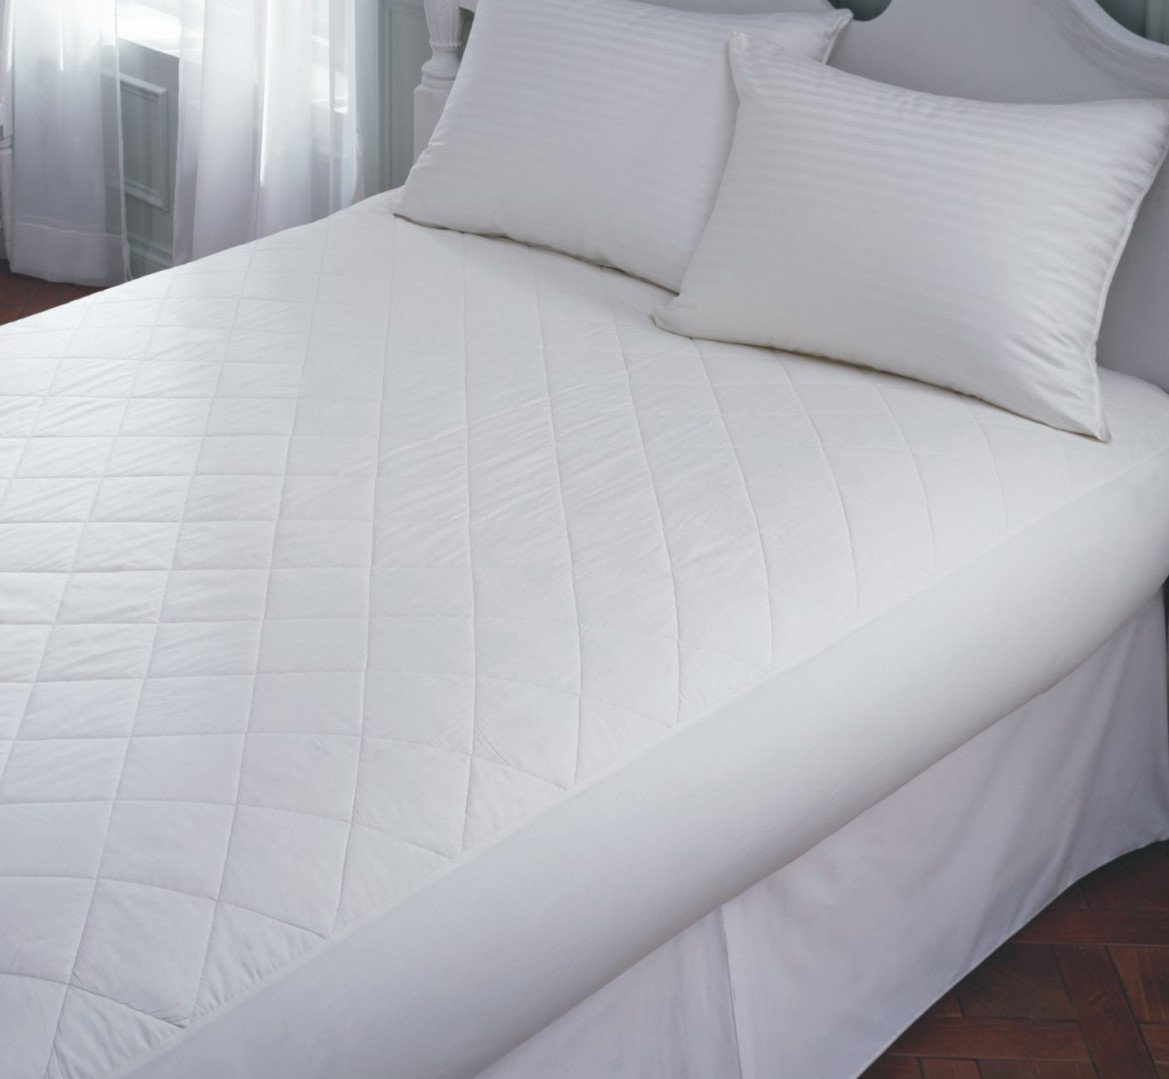 Super-Filled Mattress Pad by Downright